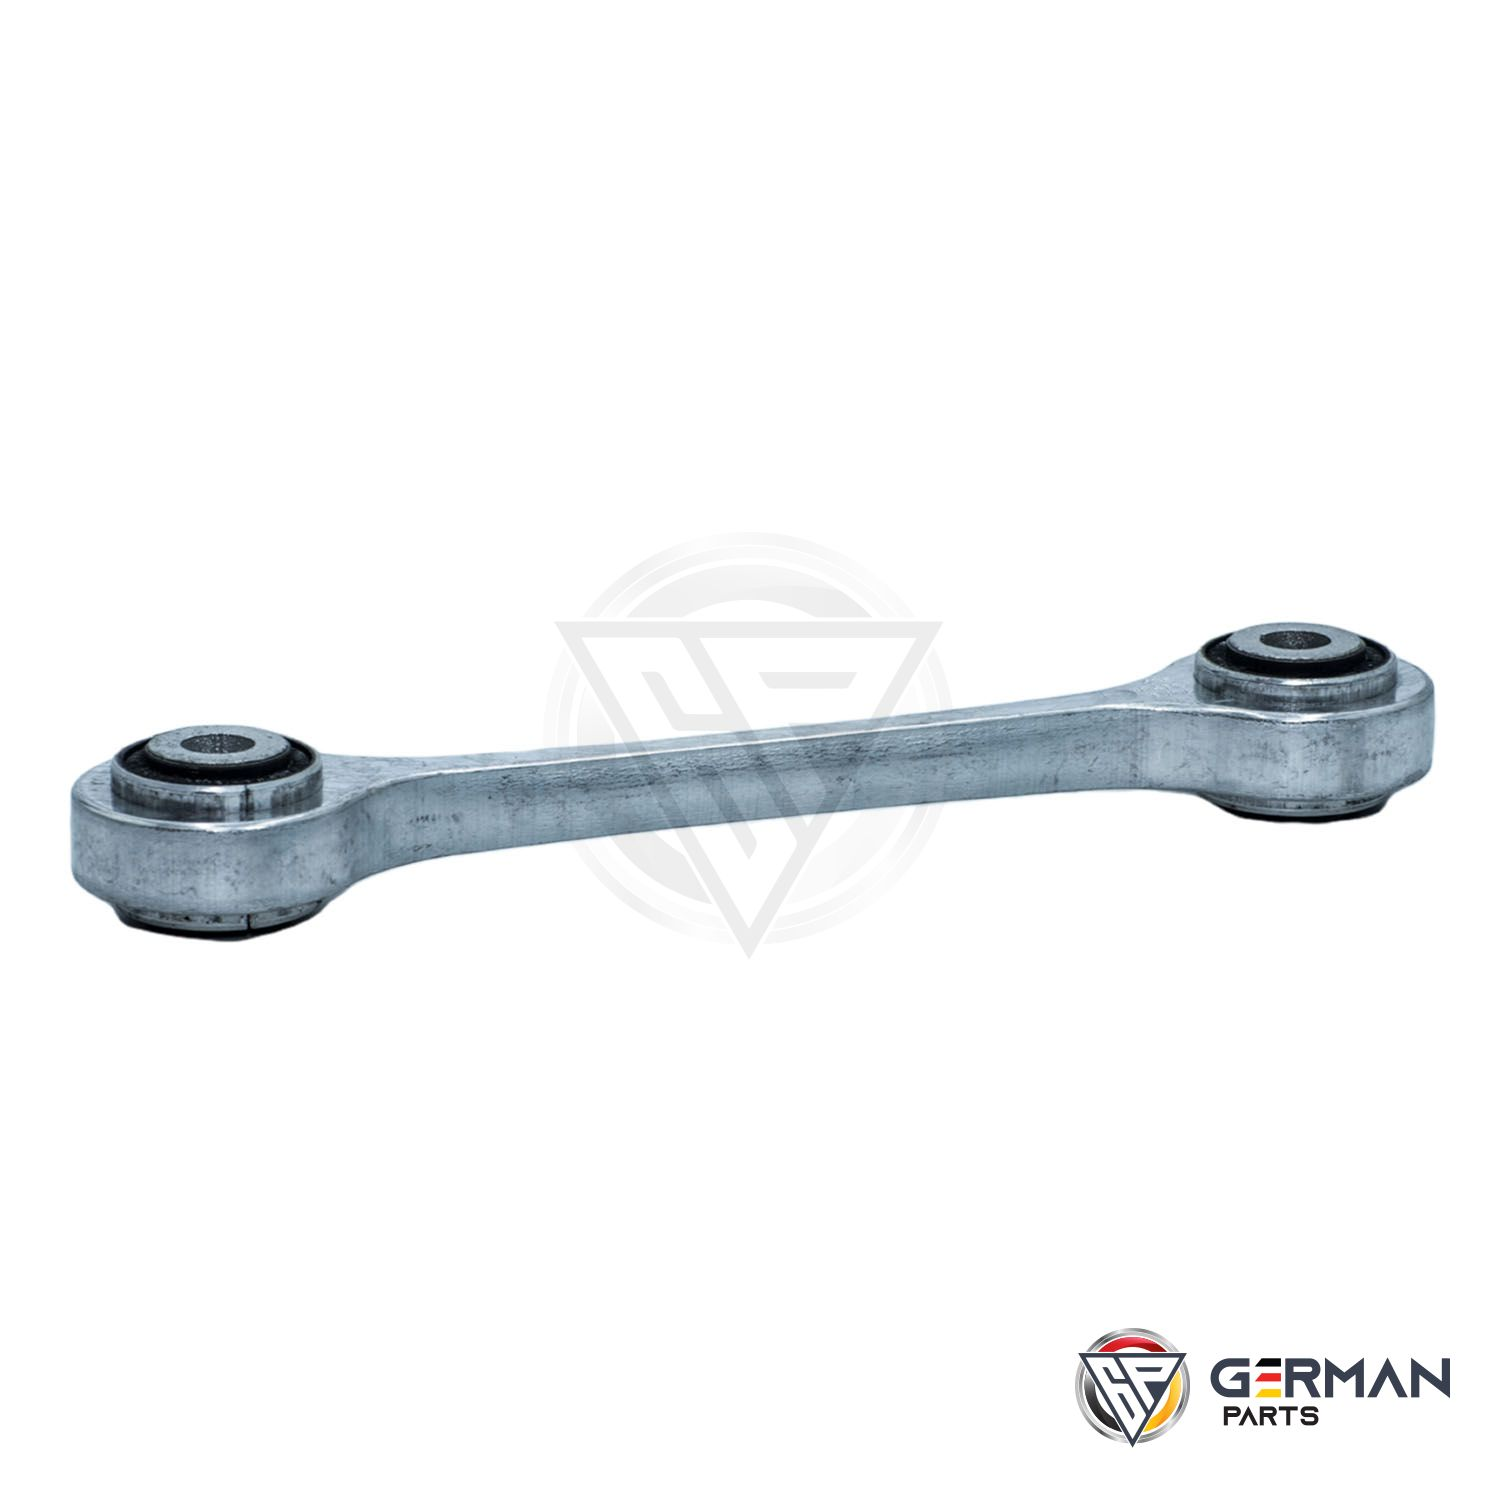 Buy Febi Bilstein Stabilizer Link 7L0411317 - German Parts